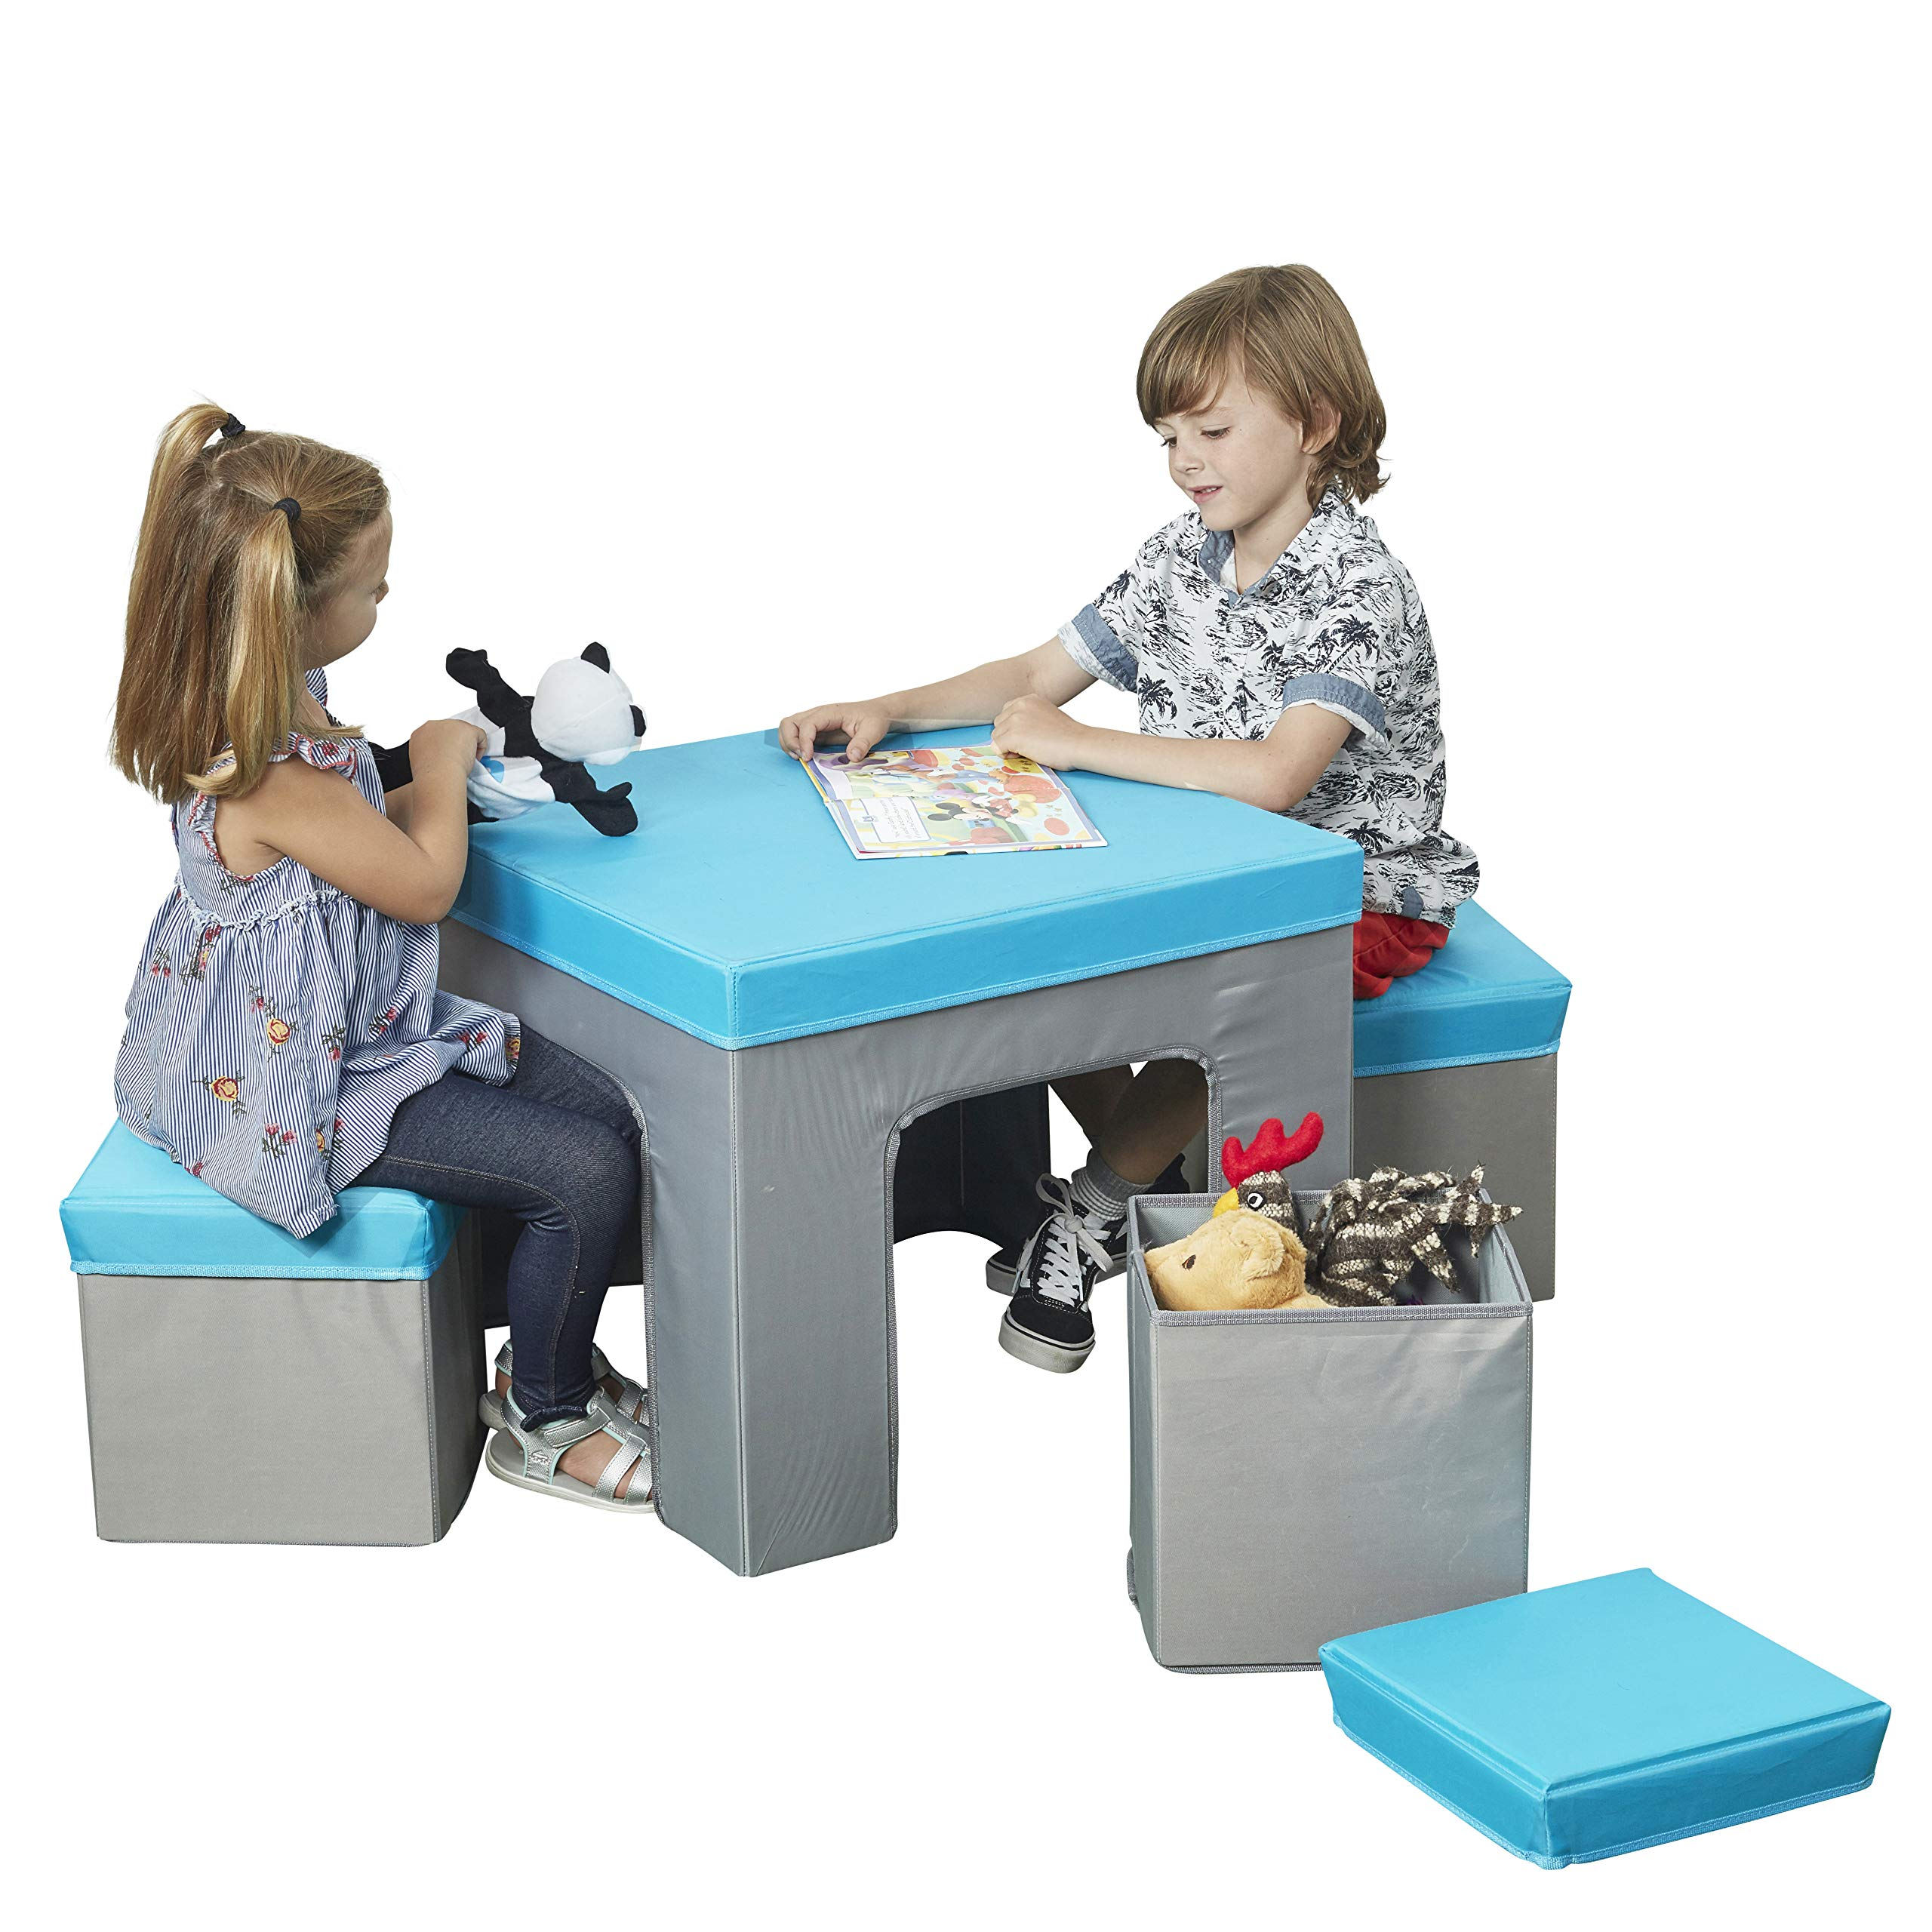 ECR4Kids Multipurpose Folding Kids Table and Chair Set, 5-Piece Furniture Set with Fabric Storage Ottomans, Easy to Assemble, Blue/Grey by ECR4Kids